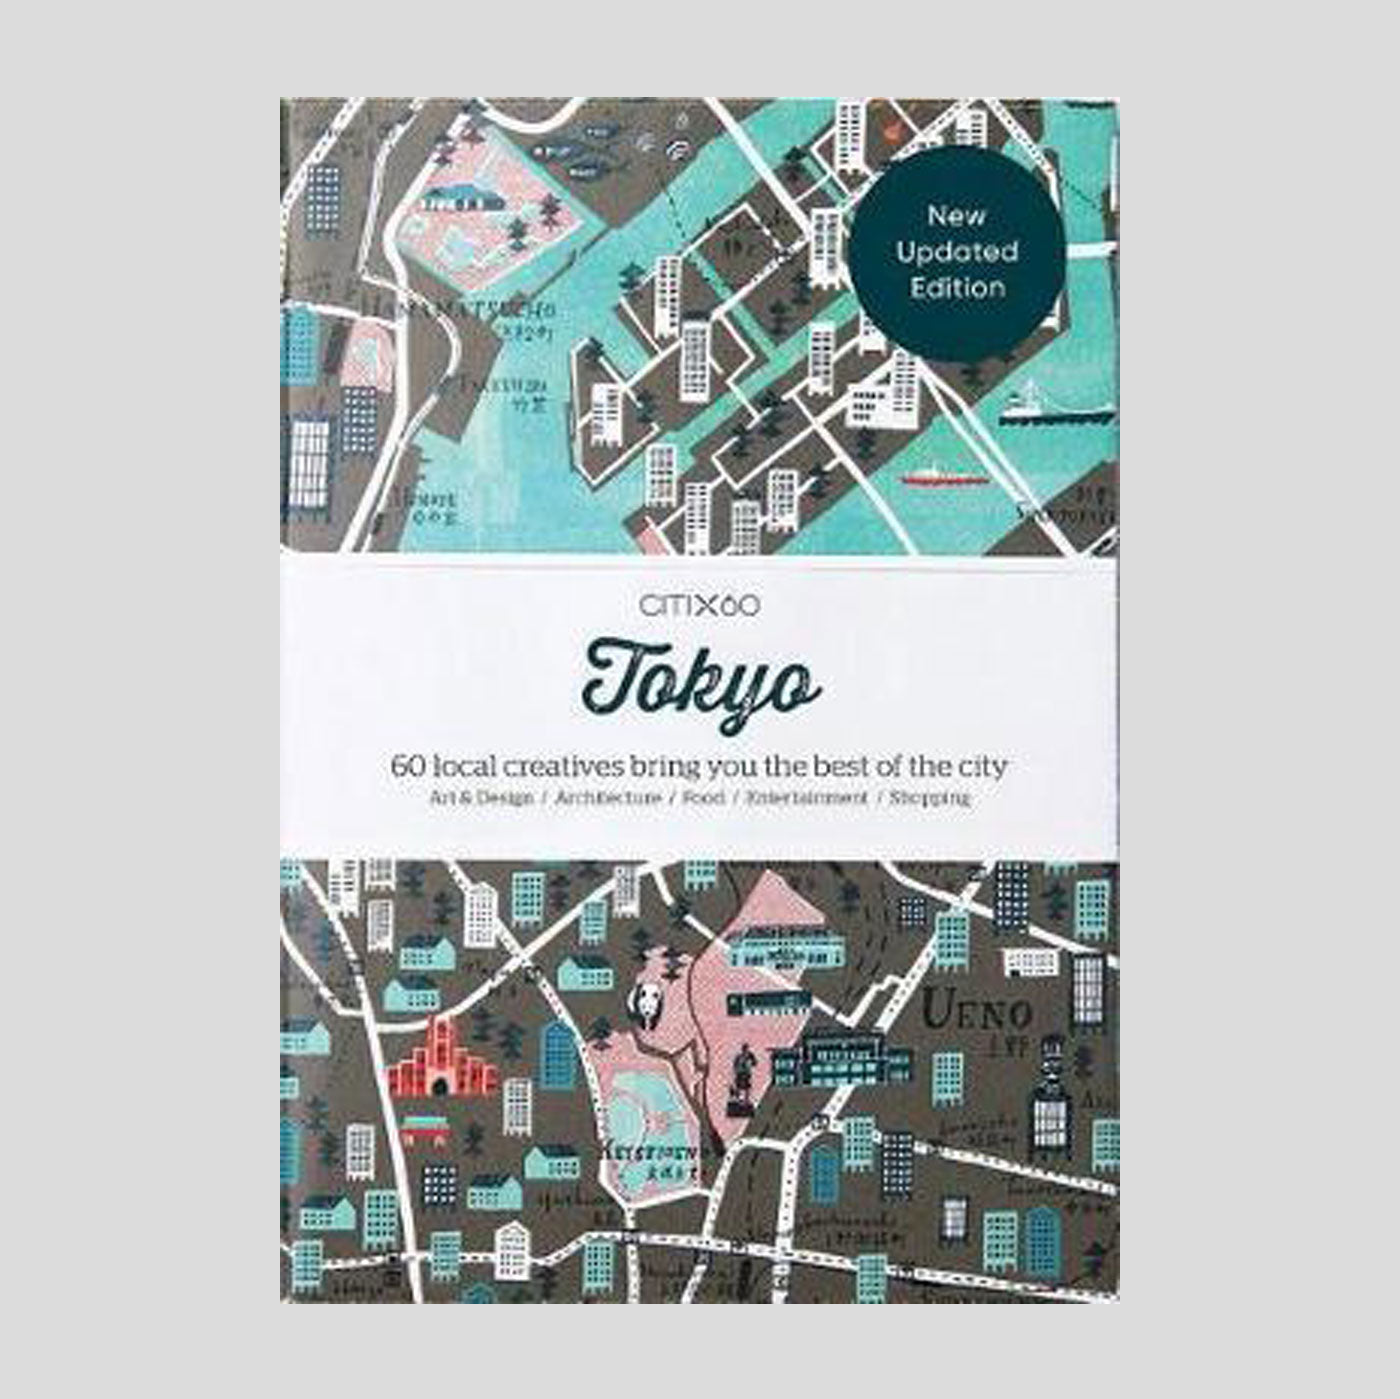 CITIx City Guides - Tokyo (revised edition!)